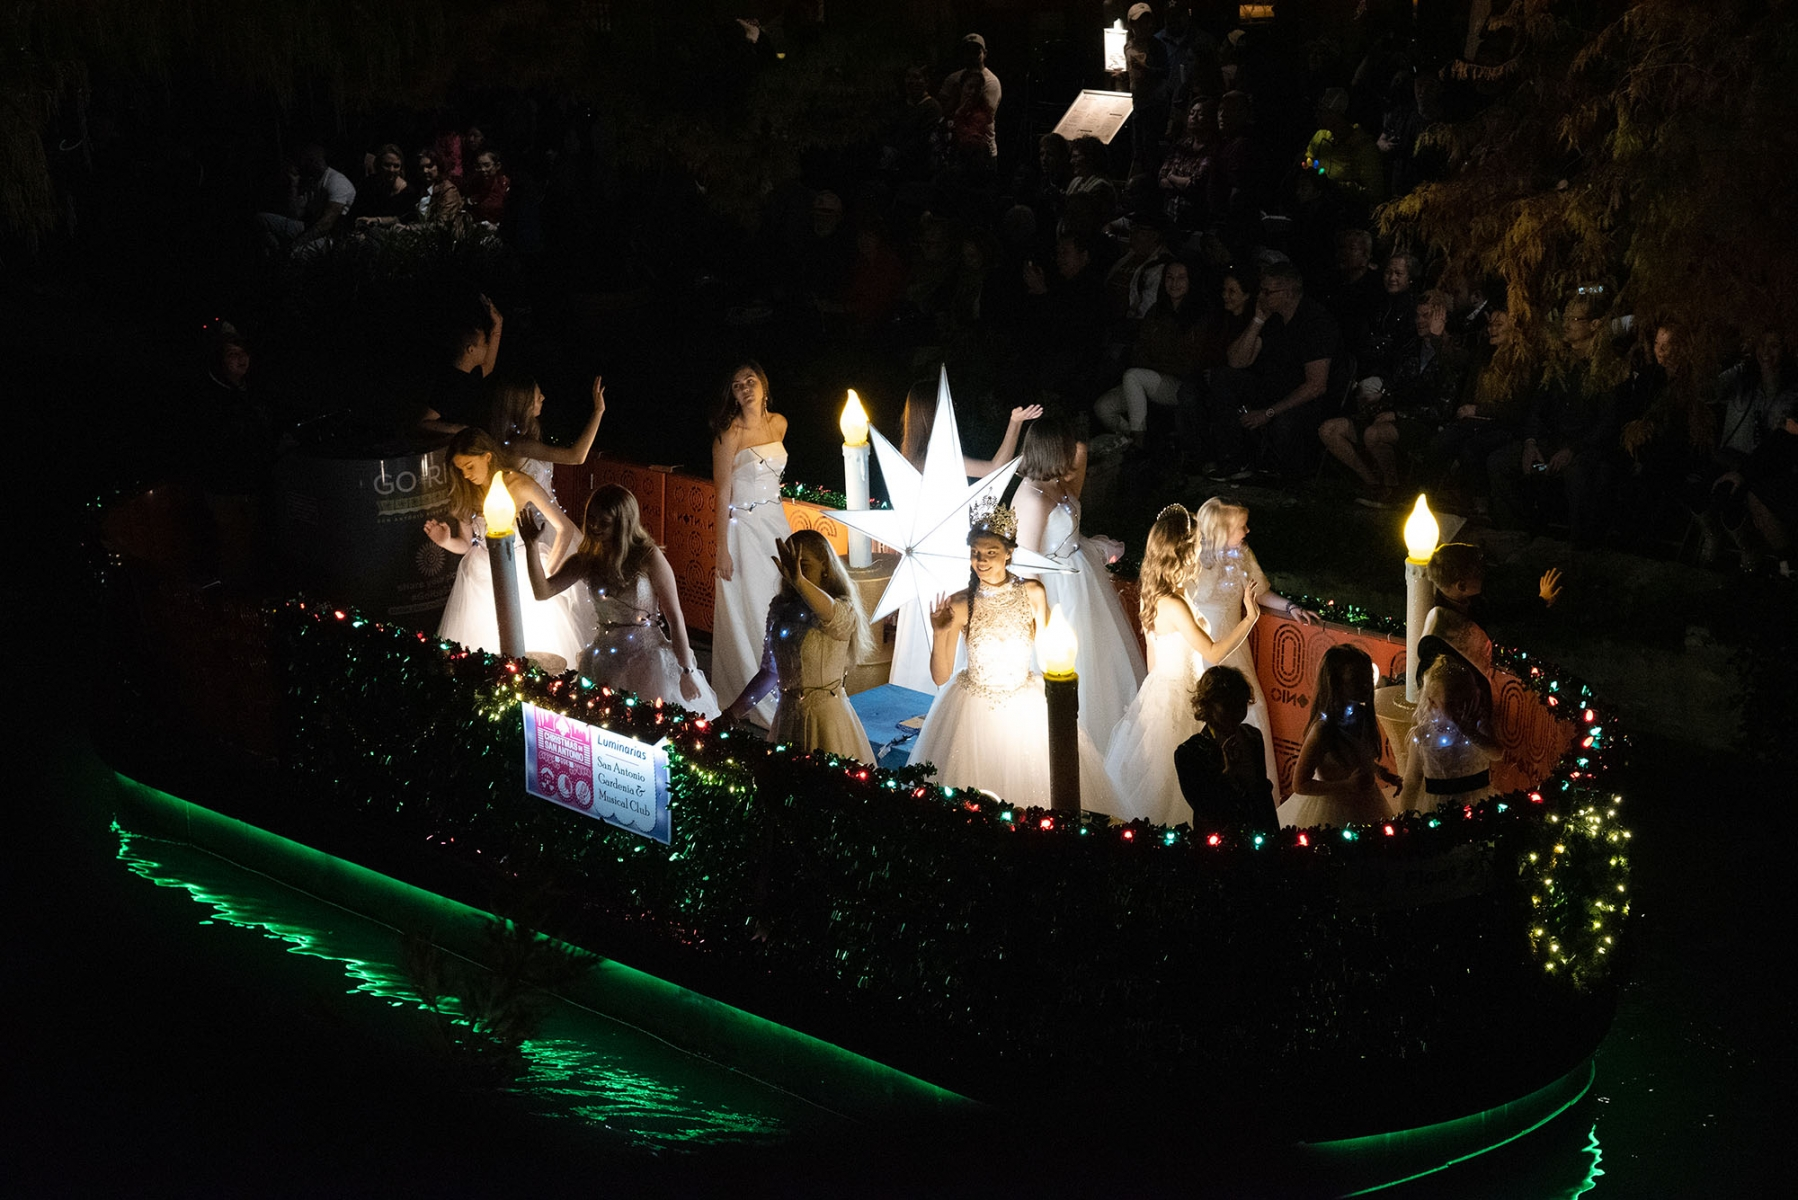 A barge full of princesses floats down the River Walk during the annual Ford Holiday River Parade Friday night. <em><b>Photo by V. Finster | Heron</b></em>